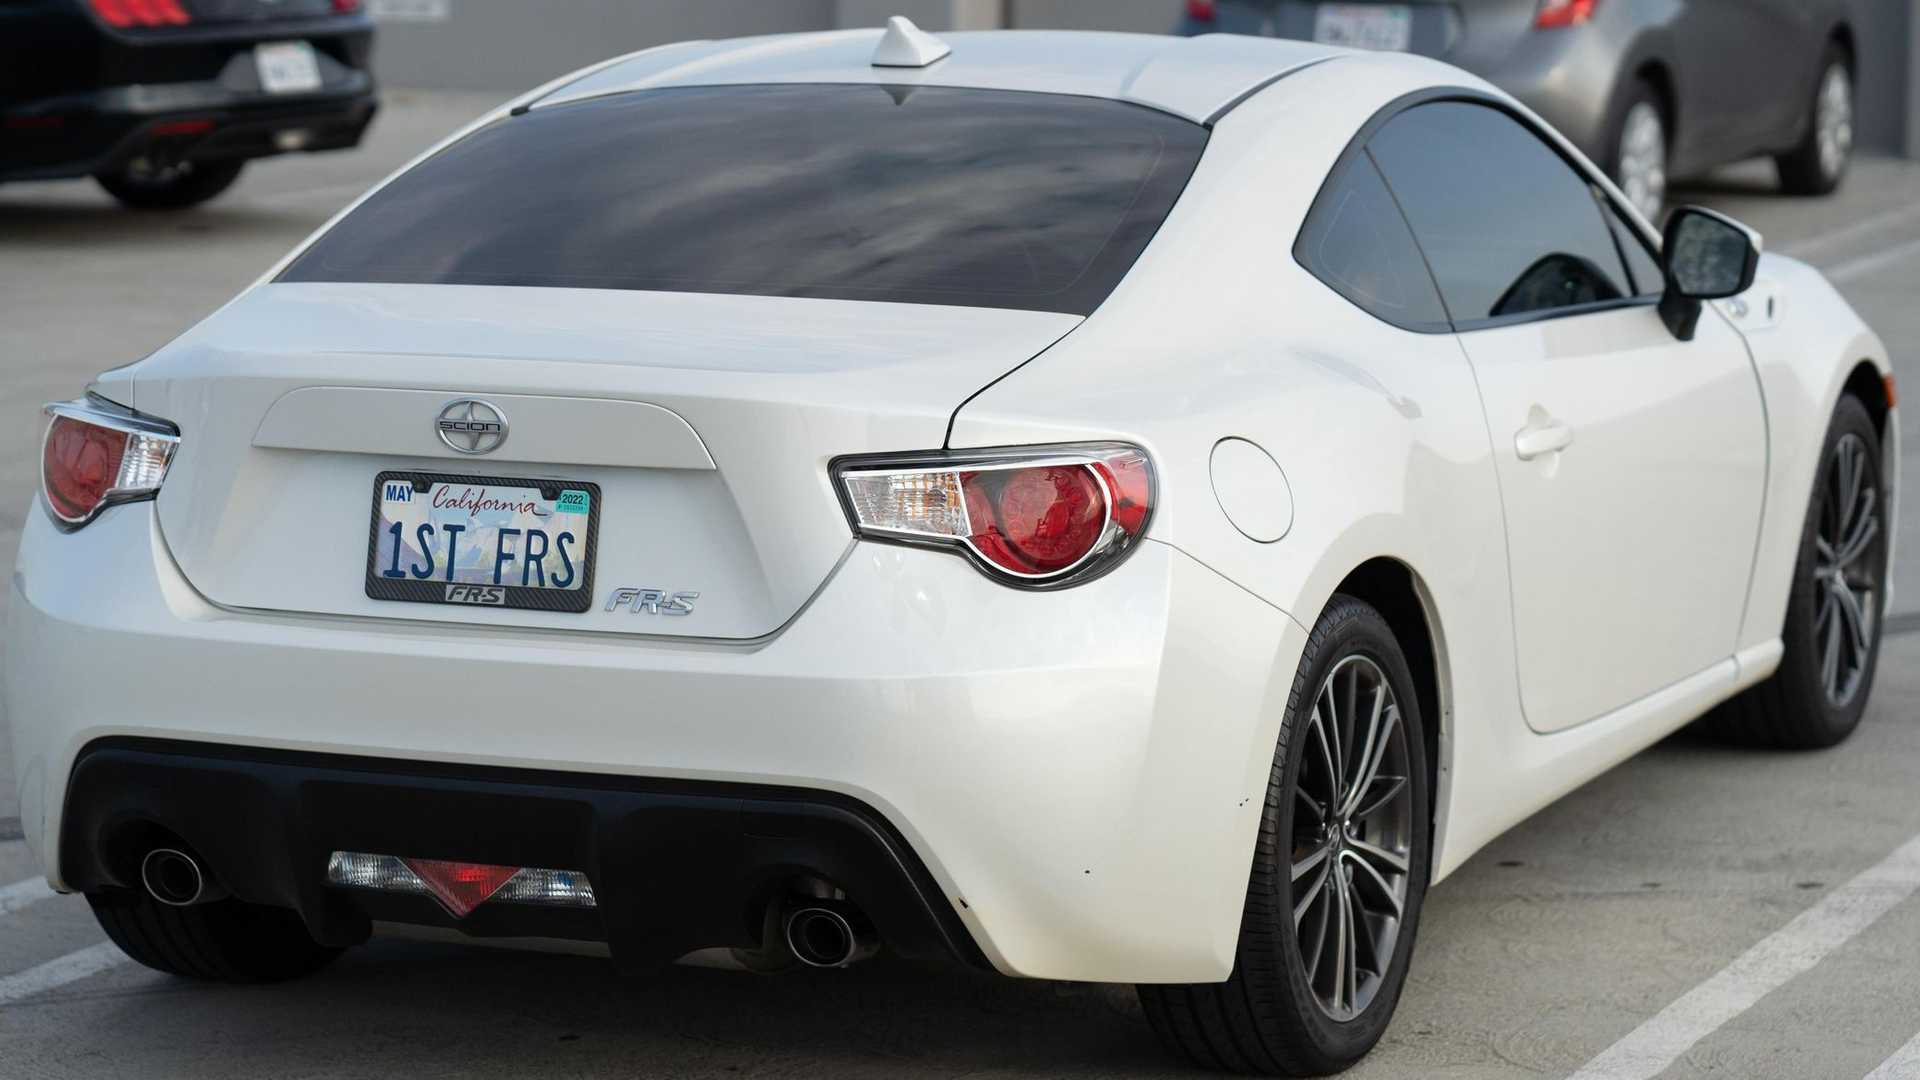 https://cdn.motor1.com/images/mgl/Nrzxj/s6/first-scion-fr-s-in-us-for-sale-rear-angle.jpg